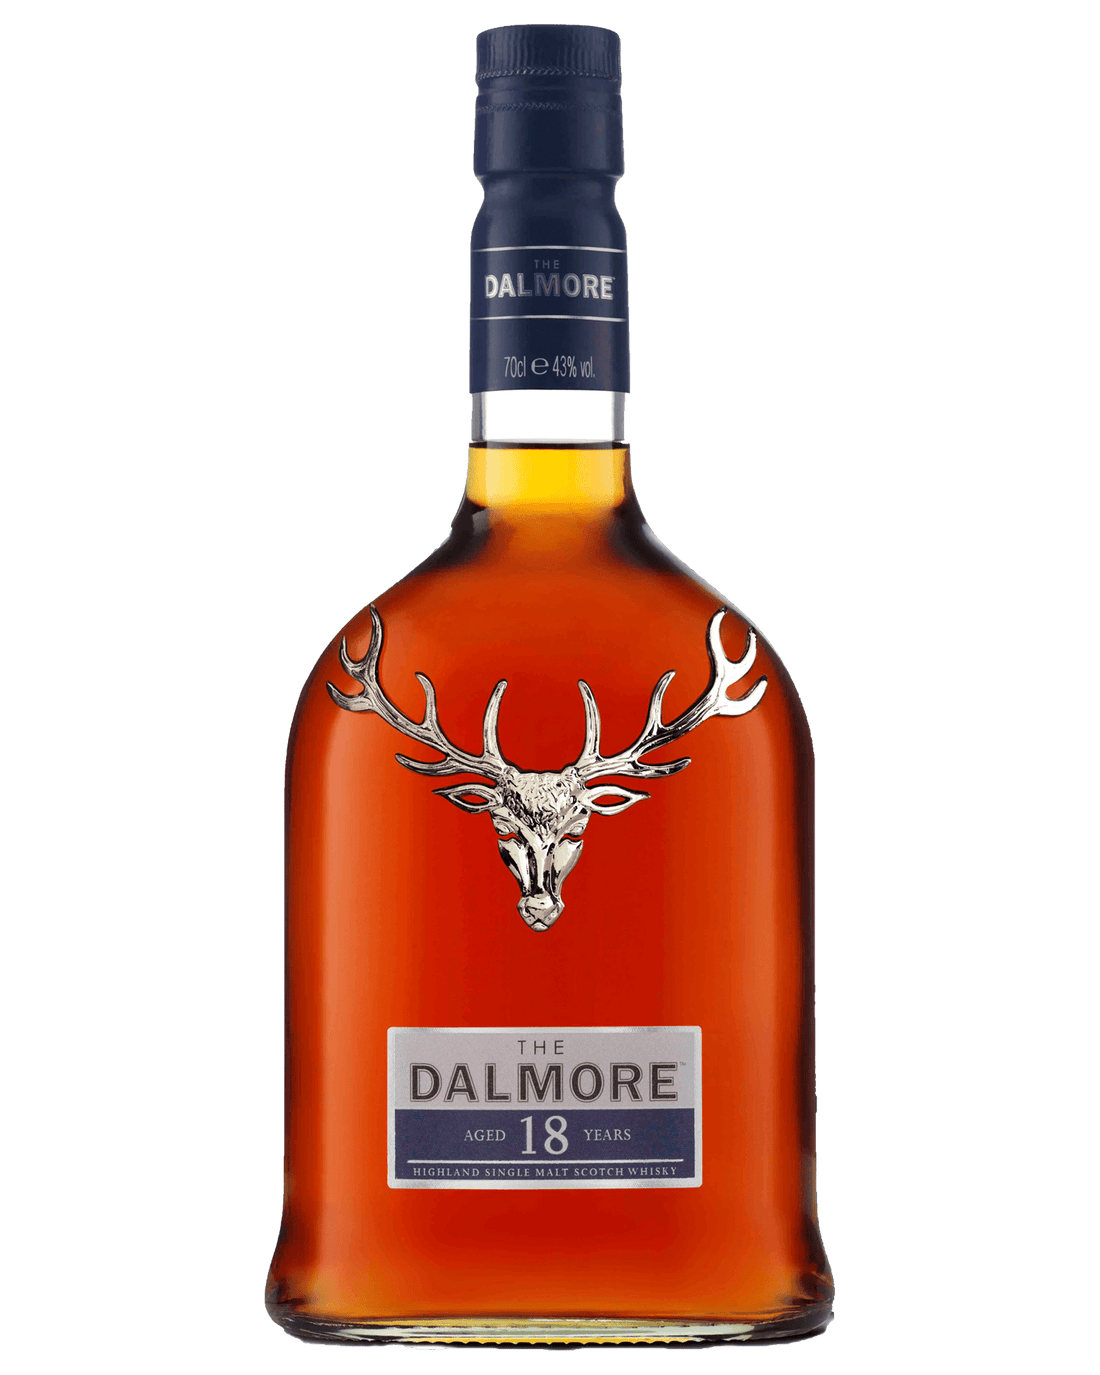 The Dalmore 18 Year Old Single Malt Scotch Whisky (700mL)